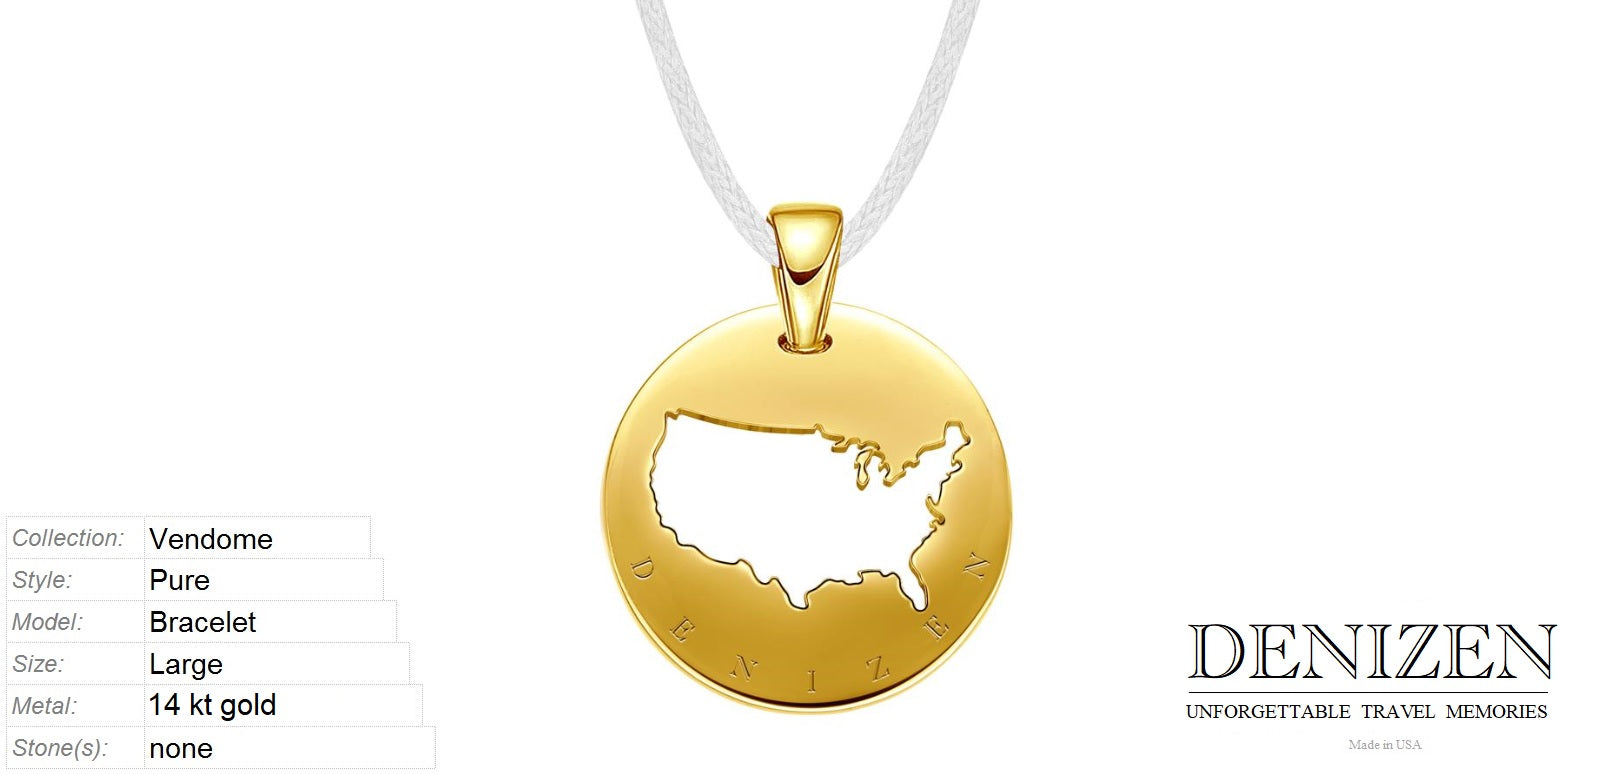 DENIZEN Jewelry necklace in 14kt gold motif of USA